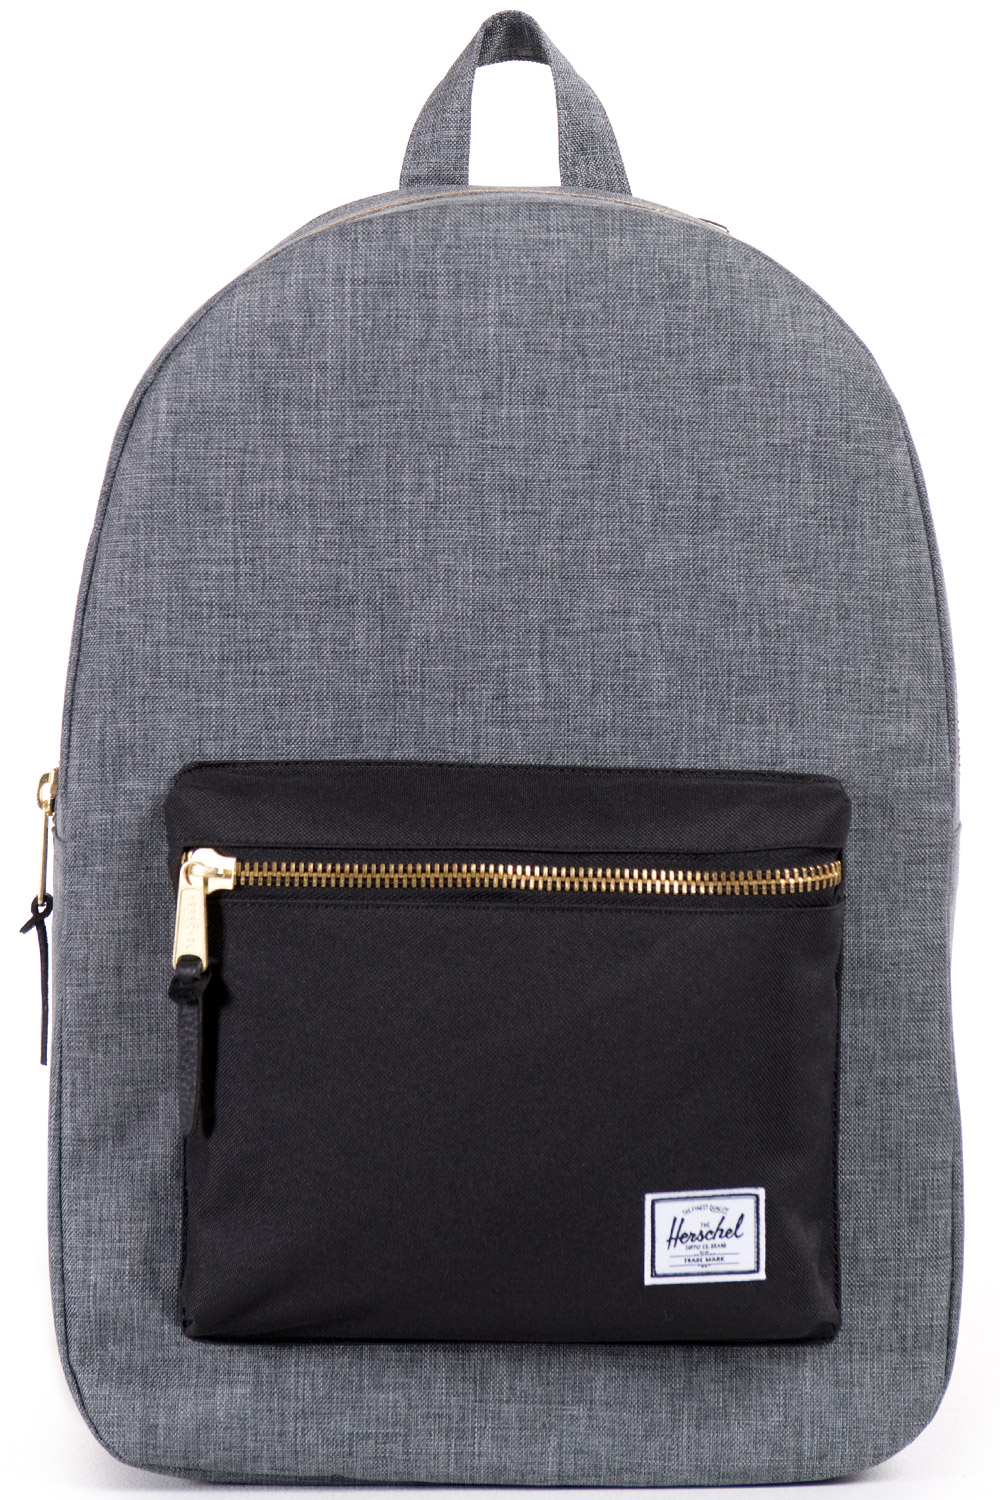 Herschel Settlement Backpack Grey   Black  33769038b8a0a